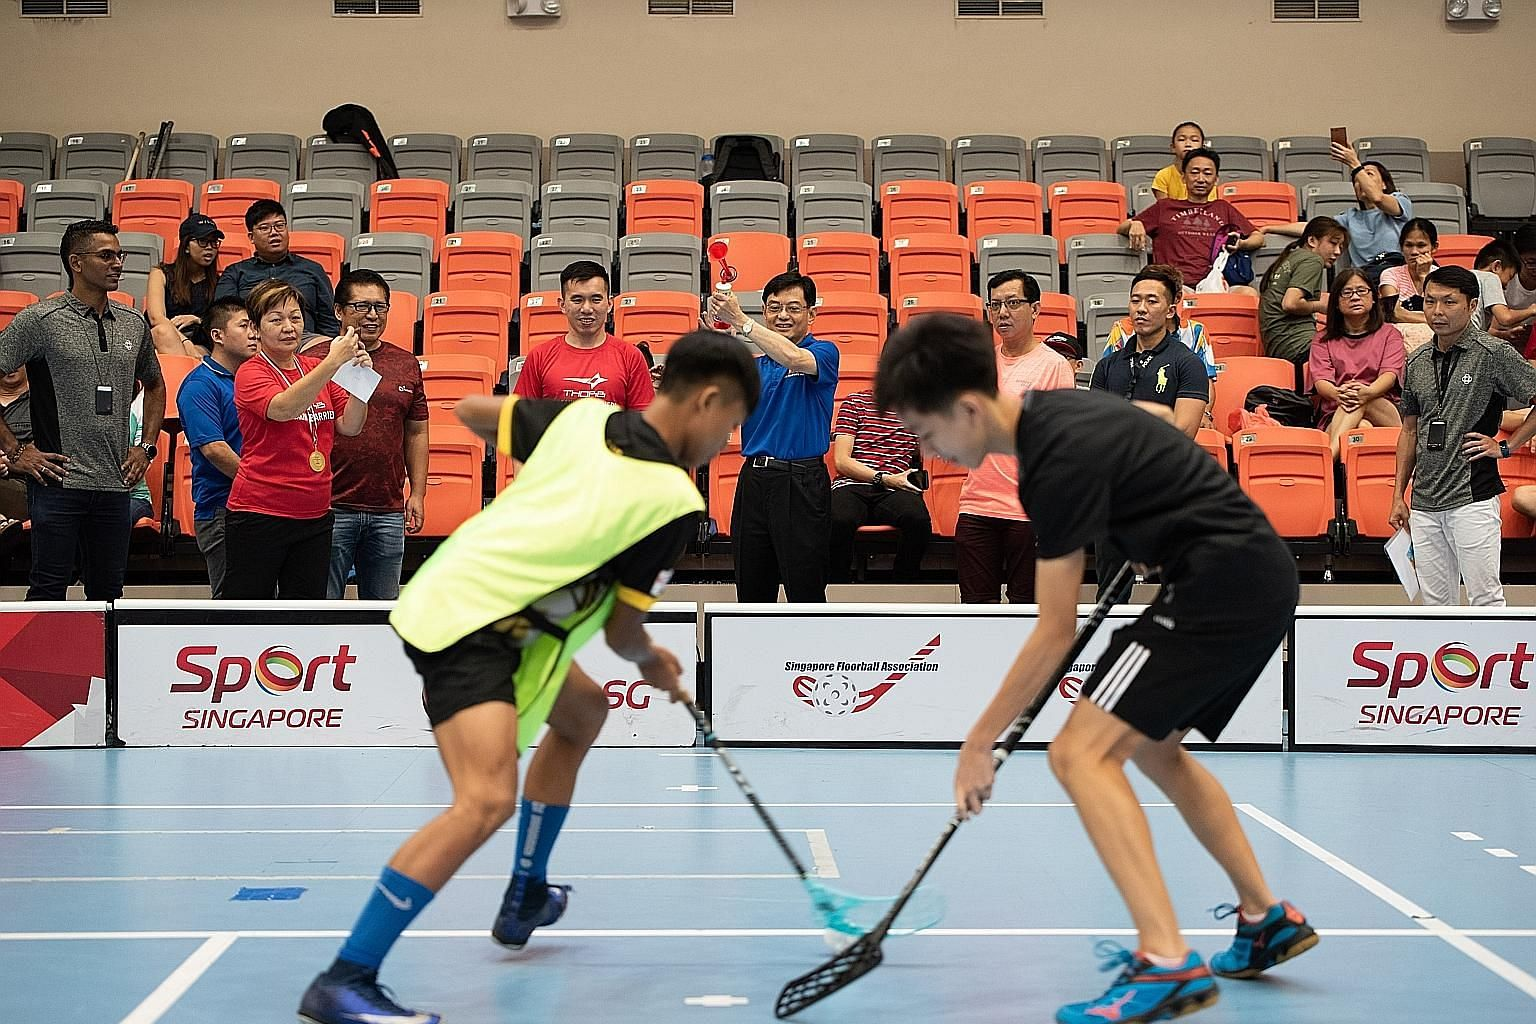 Finance Minister Heng Swee Keat, who is also the adviser to Tampines grassroots organisations, sounding the horn at Our Tampines Hub on Monday for one of the matches at Showdown 2018, a one-day event organised by the Singapore Floorball Association w